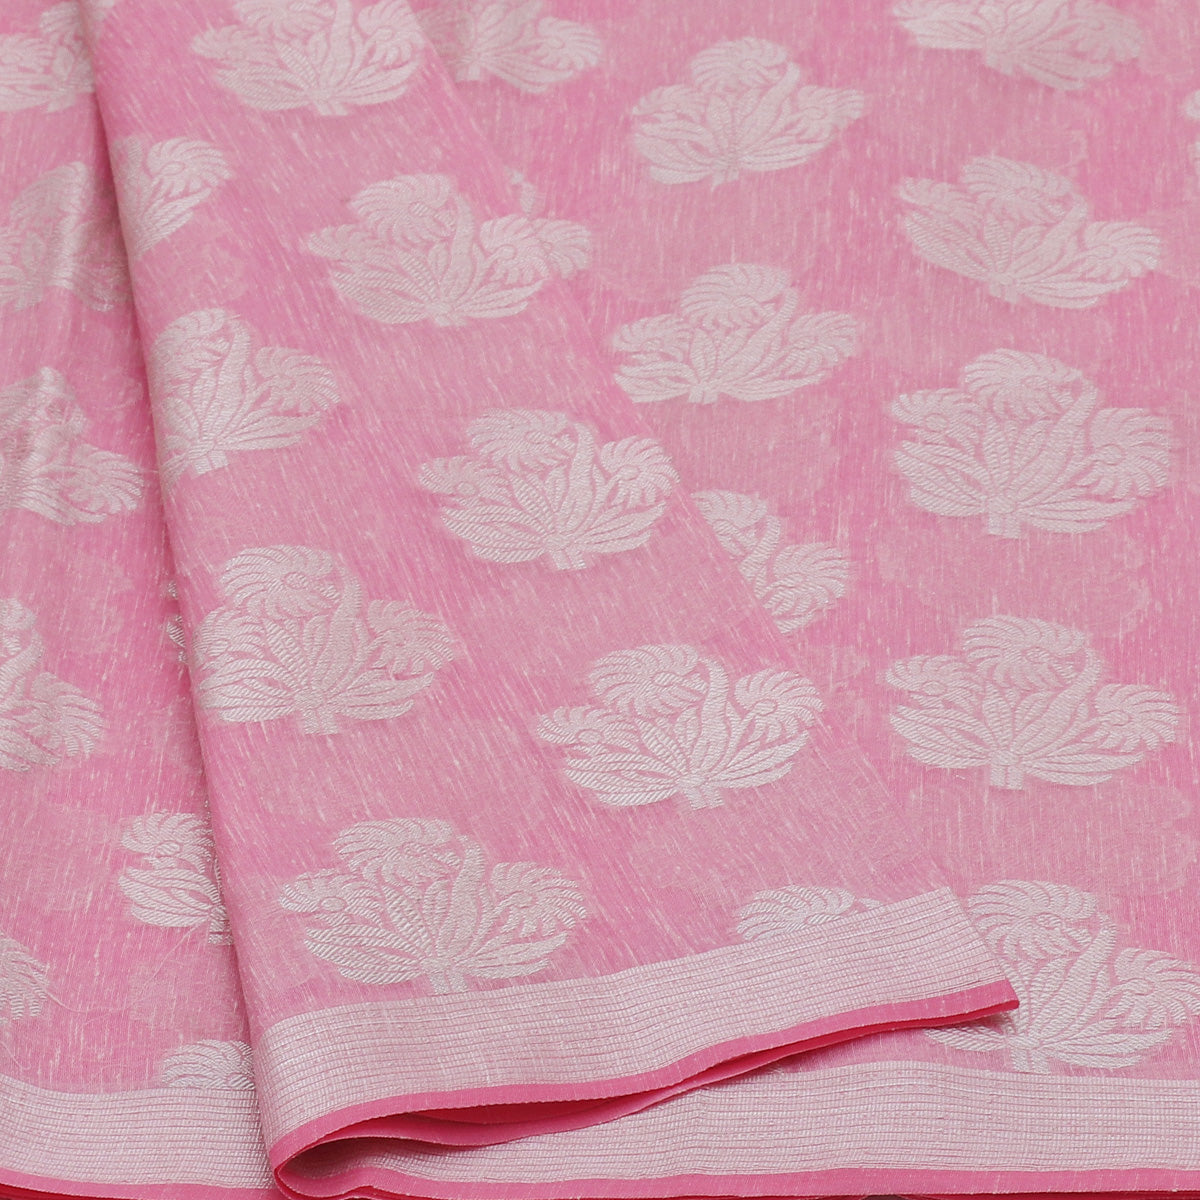 Jute Linen Silver Zari Saree Light Pink with Simple border